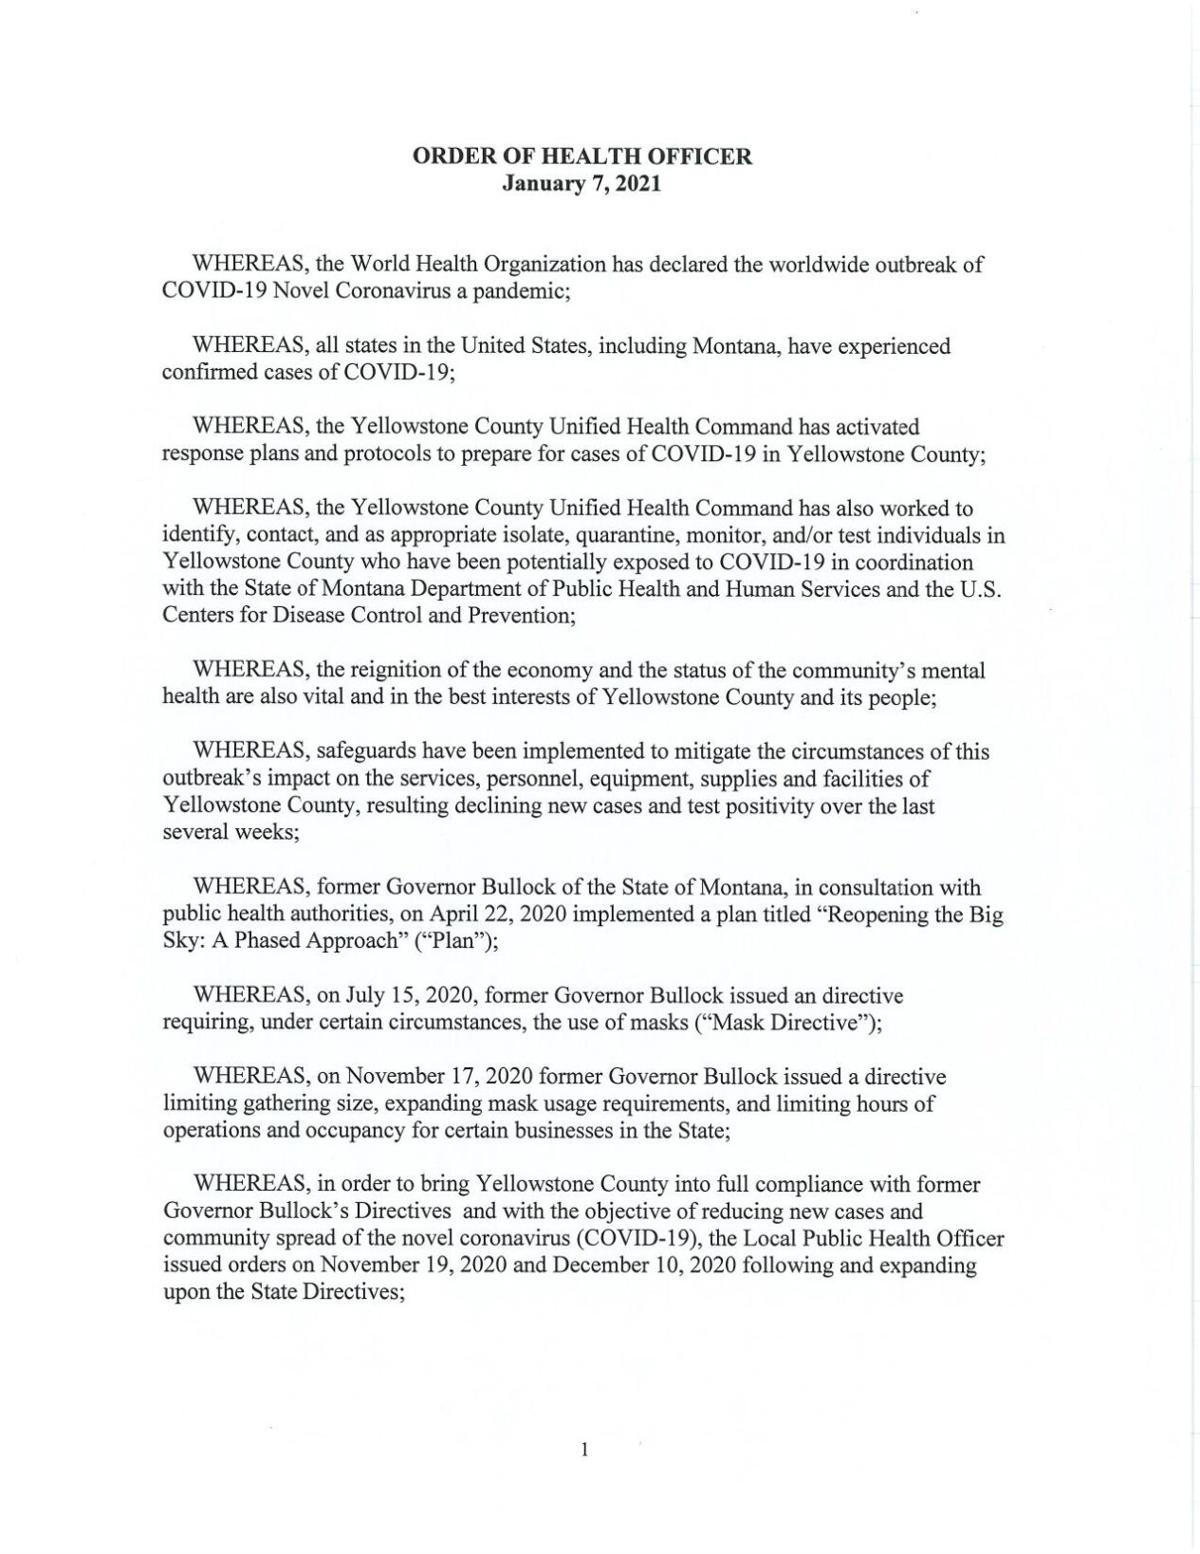 Yellowstone Co. rescinding existing local health orders